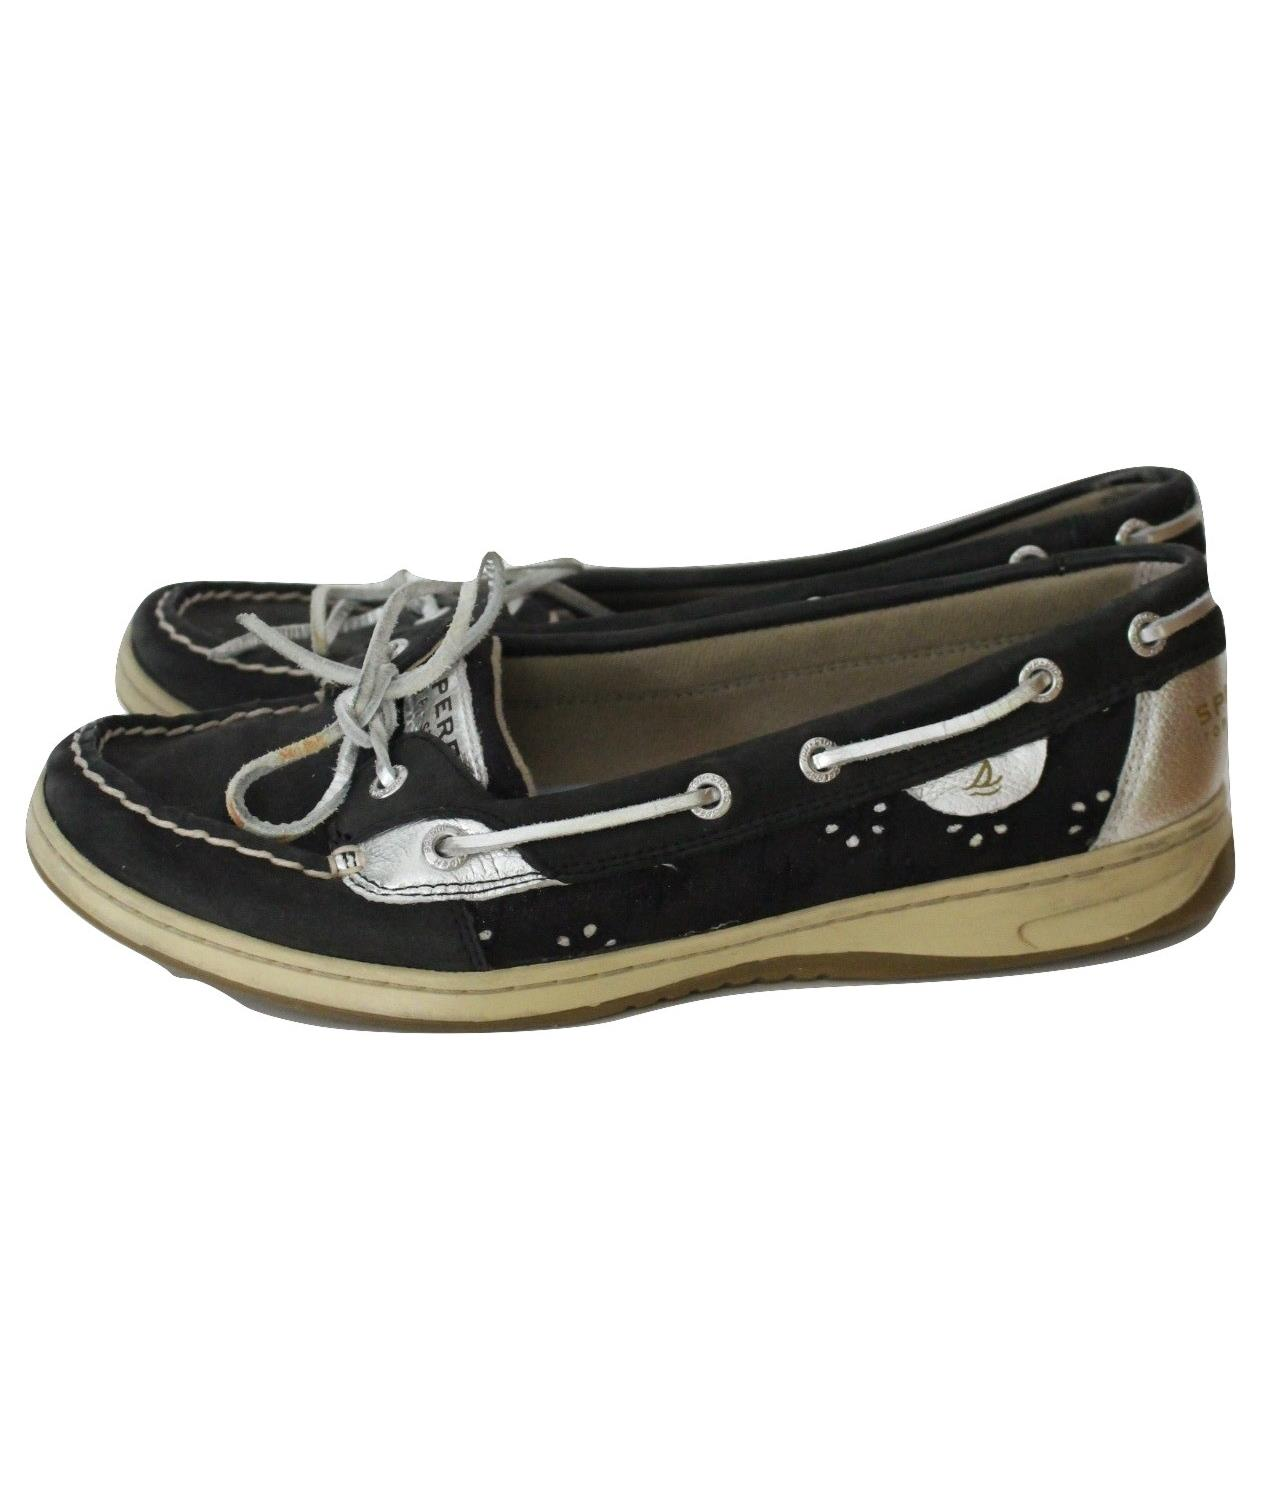 quot angelfish quot black leather eyelet deck shoes womens size 10